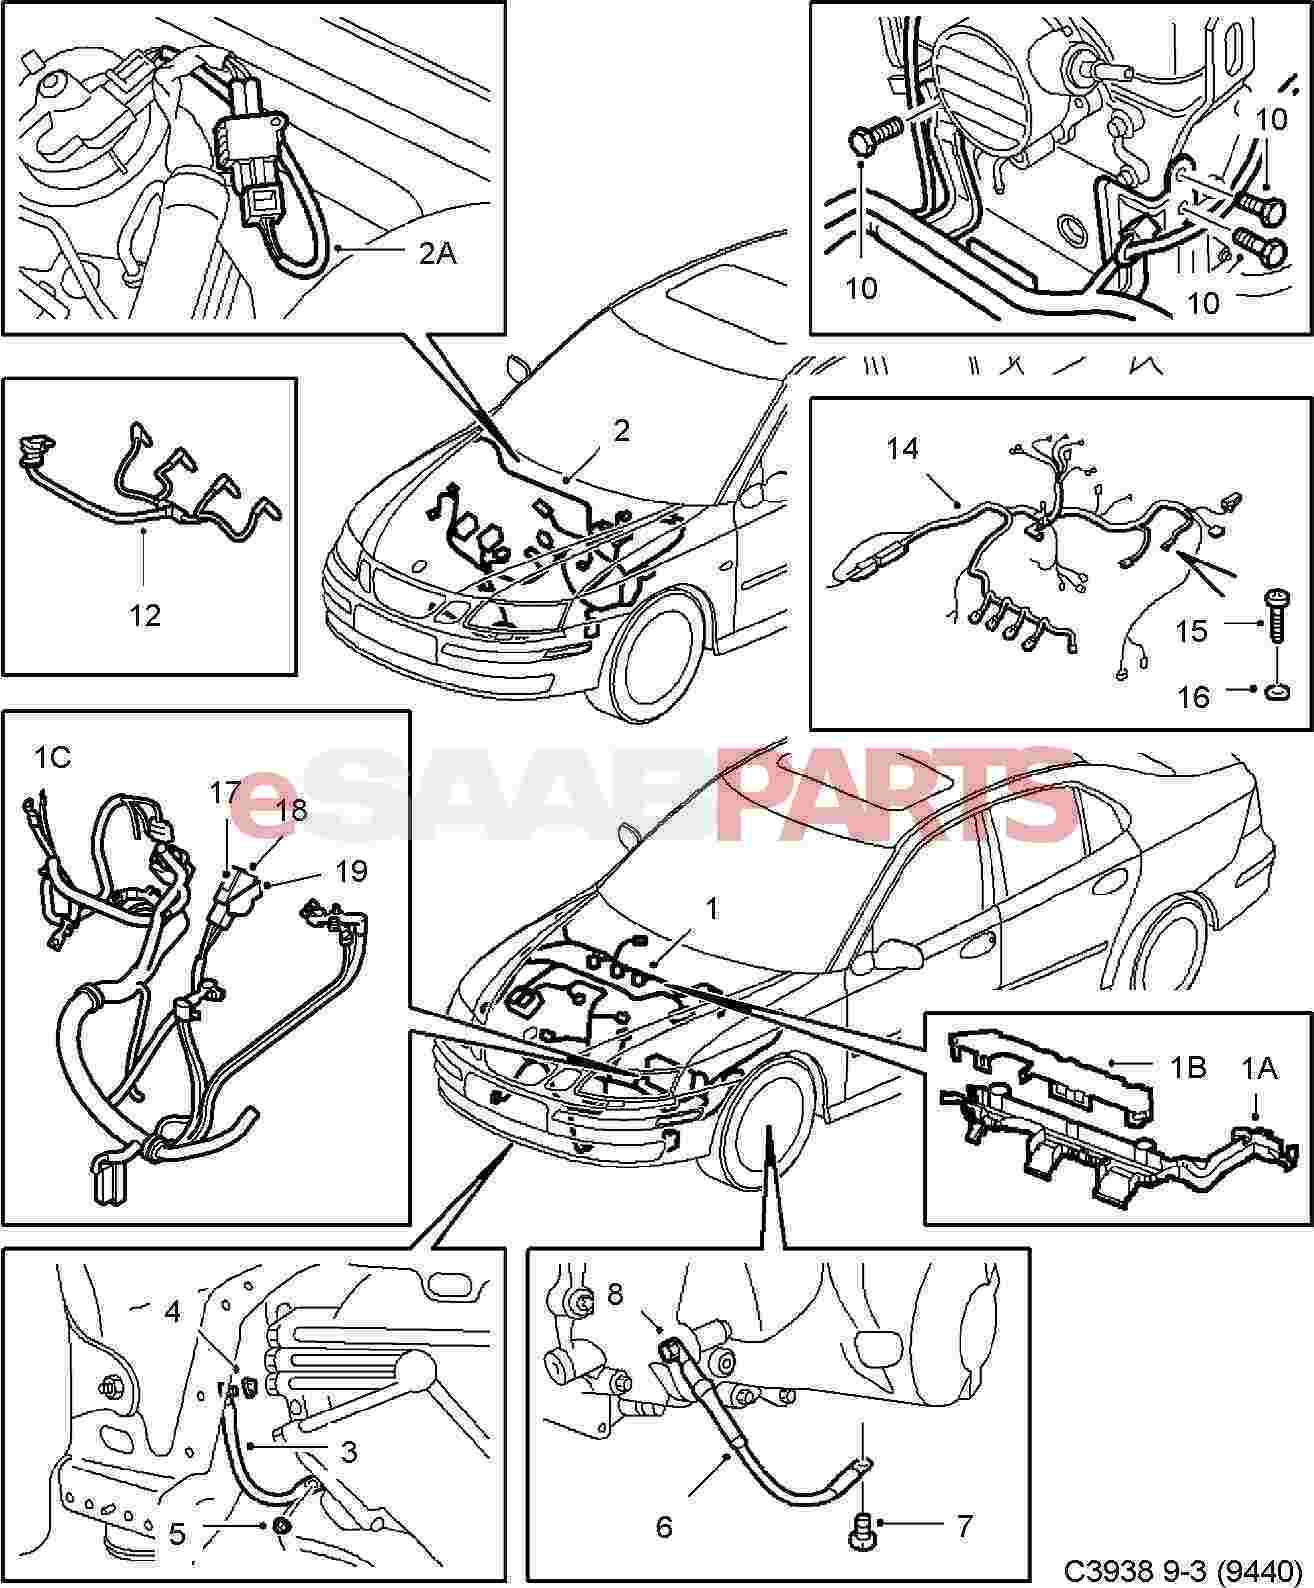 39595 esaabparts com saab 9 3 (9440) \u003e electrical parts \u003e wiring saab wiring diagram 9 3 at alyssarenee.co